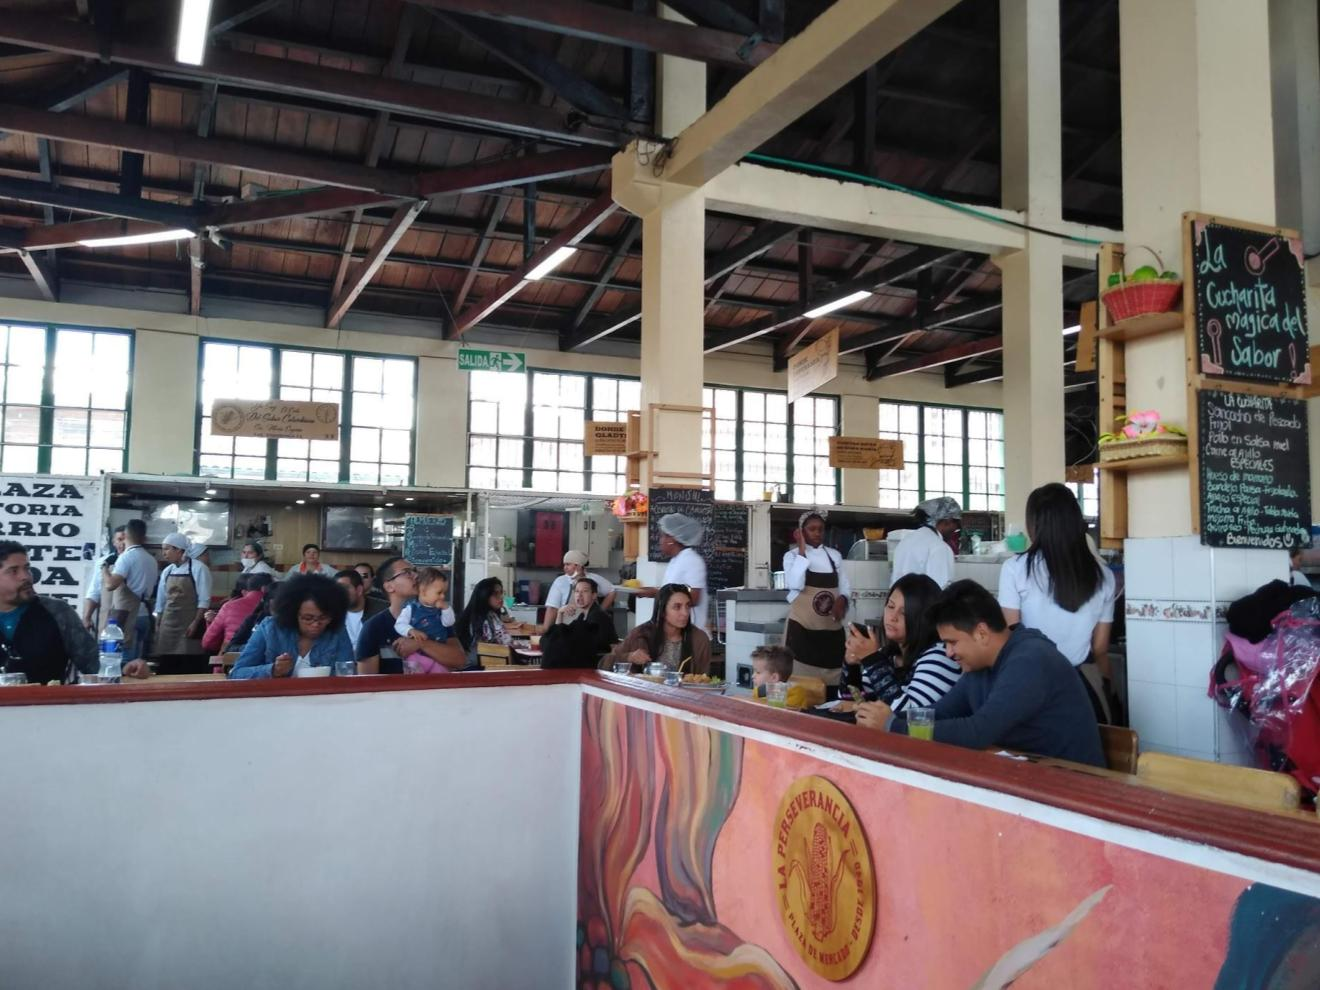 Food court in the Perseverancia Market